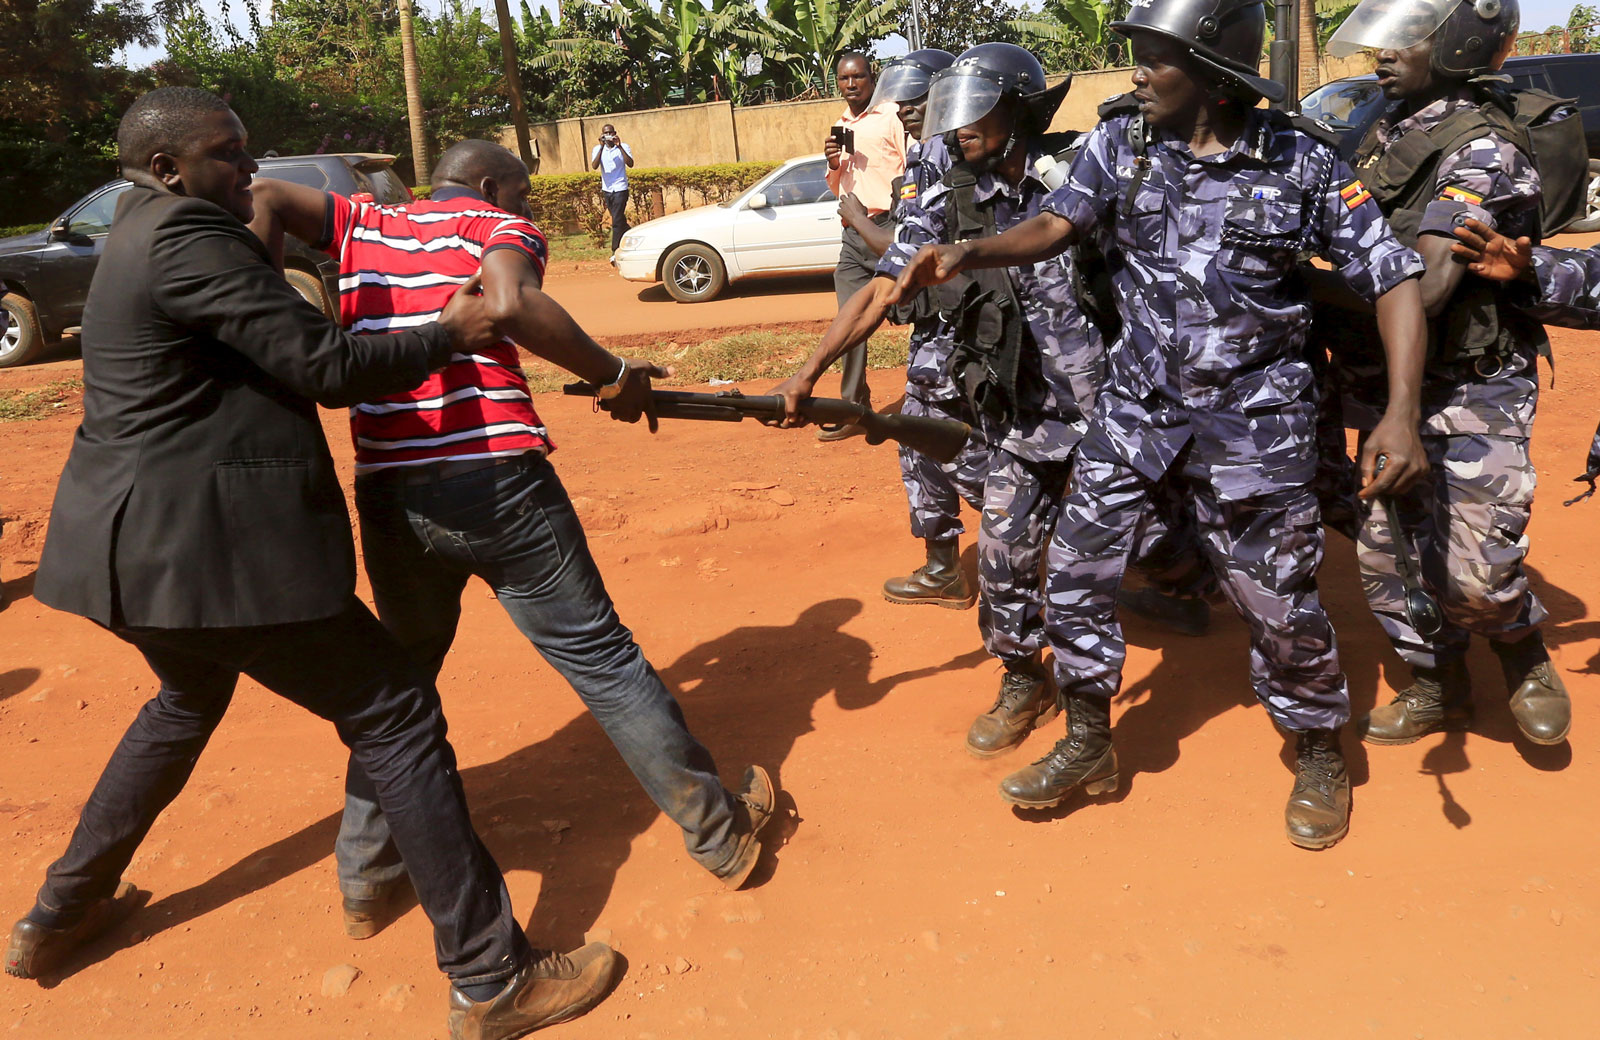 Riot police dispersing a gathering of opposition supporters in Jinja, eastern Uganda, September 10, 2015